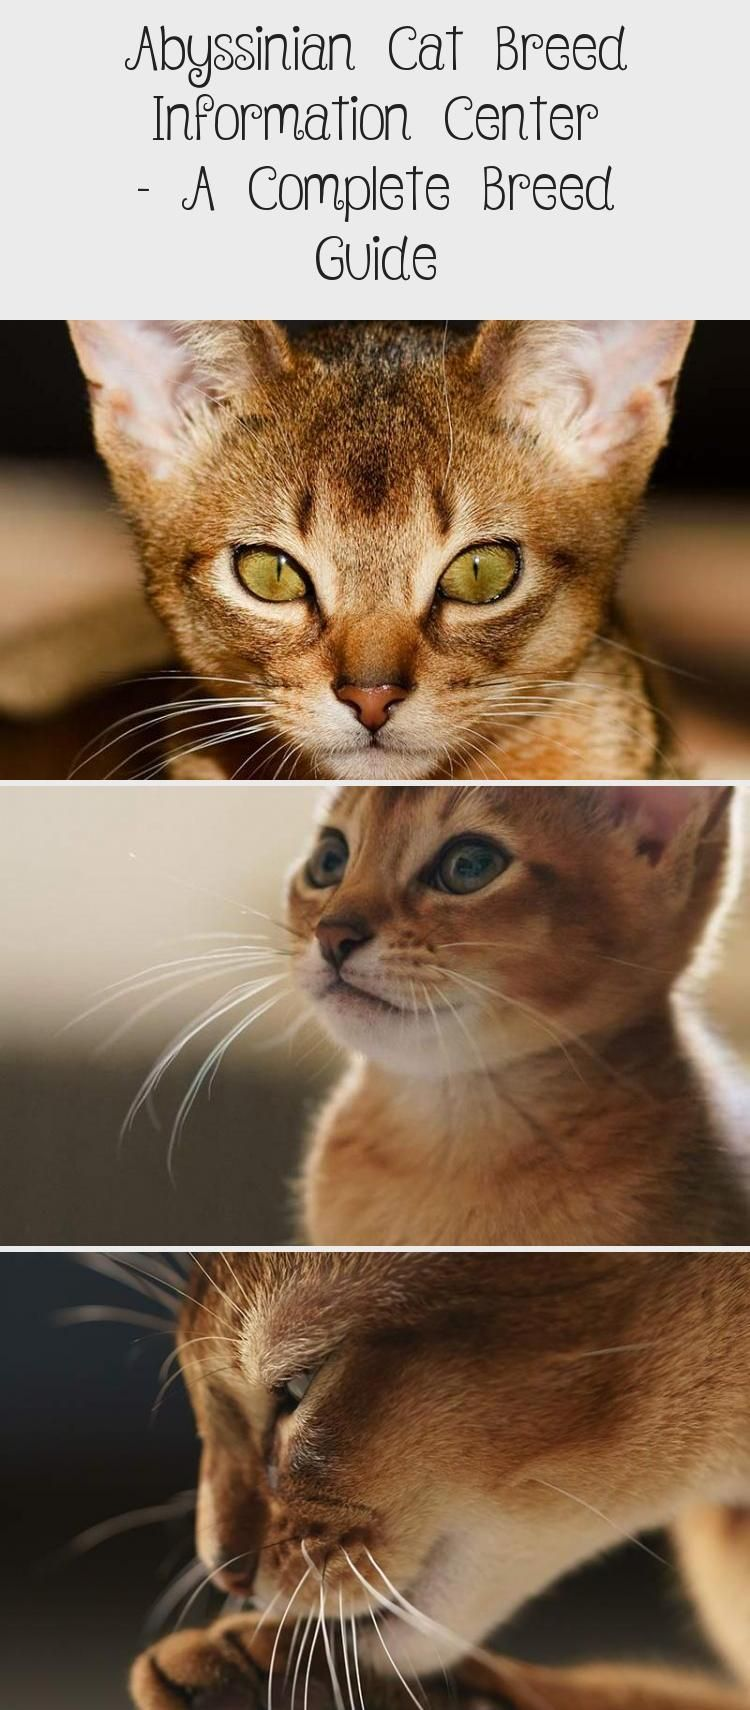 Abyssinian Cat Breed Information Center A Complete Breed Guide Cats Abyssinian Cats Cat Breeds Purebred Cats